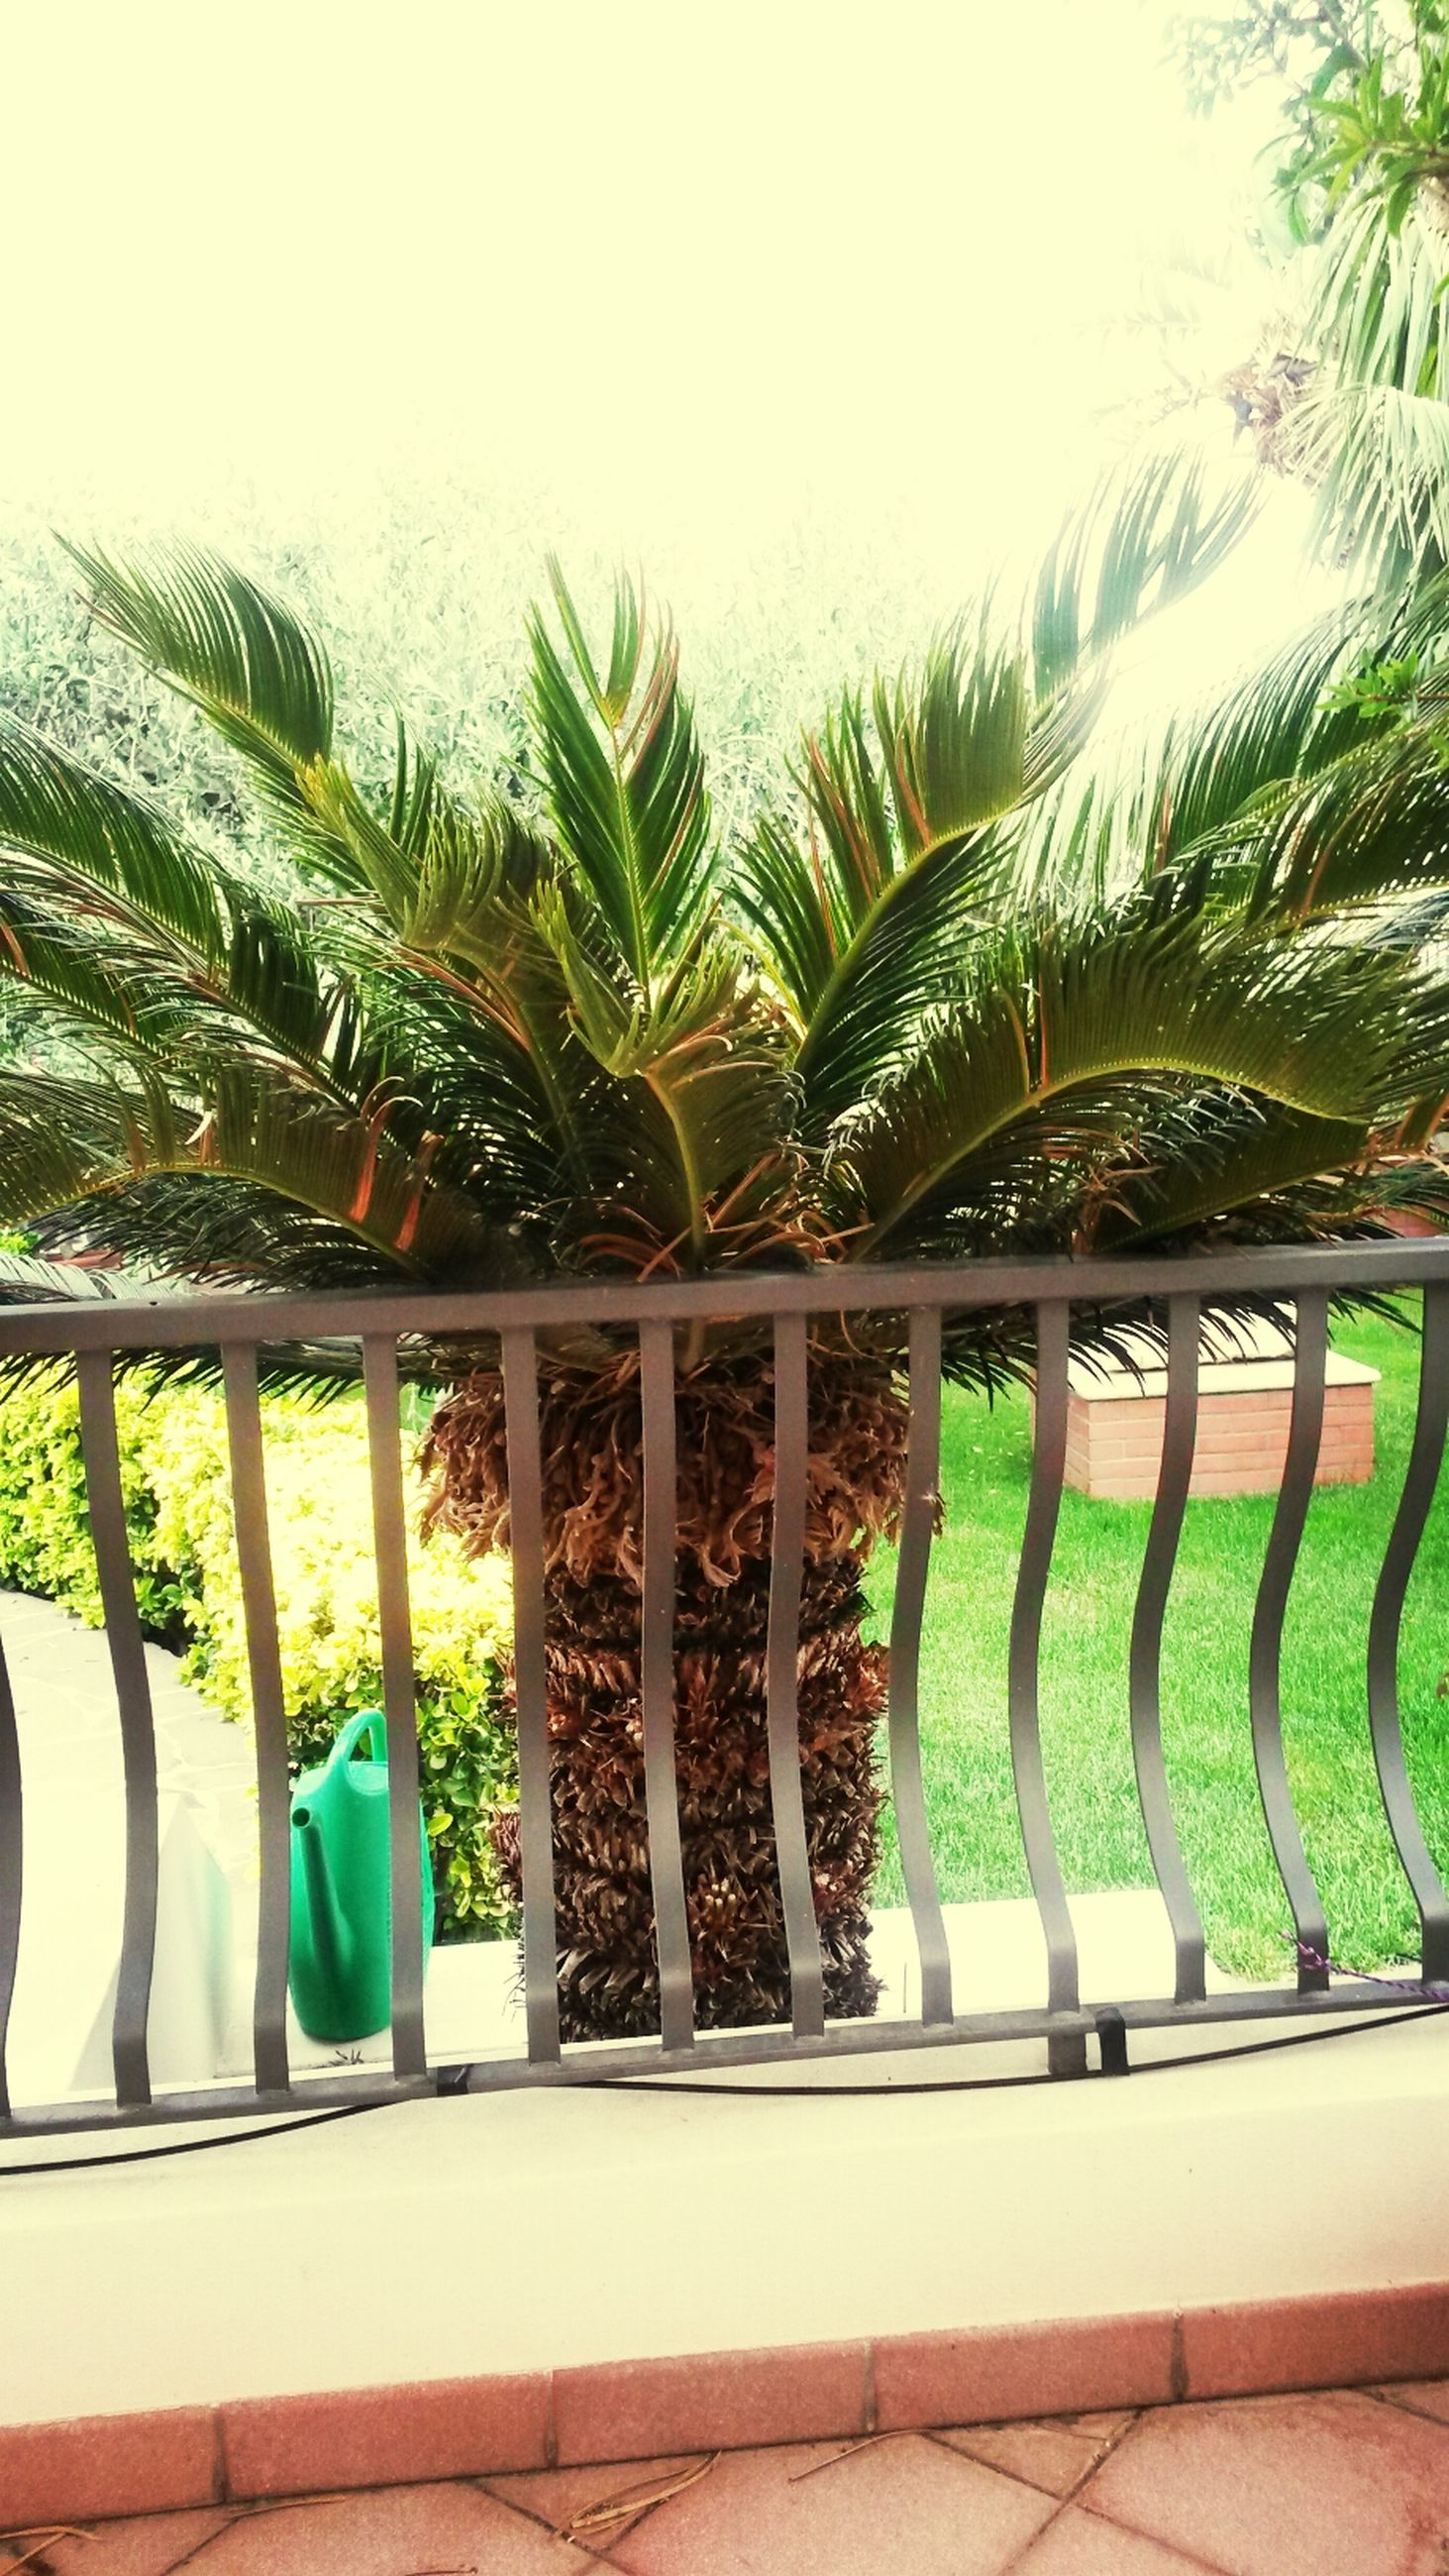 green color, railing, growth, tree, in a row, palm tree, plant, nature, day, swimming pool, clear sky, fence, green, outdoors, potted plant, water, sunlight, no people, built structure, grass